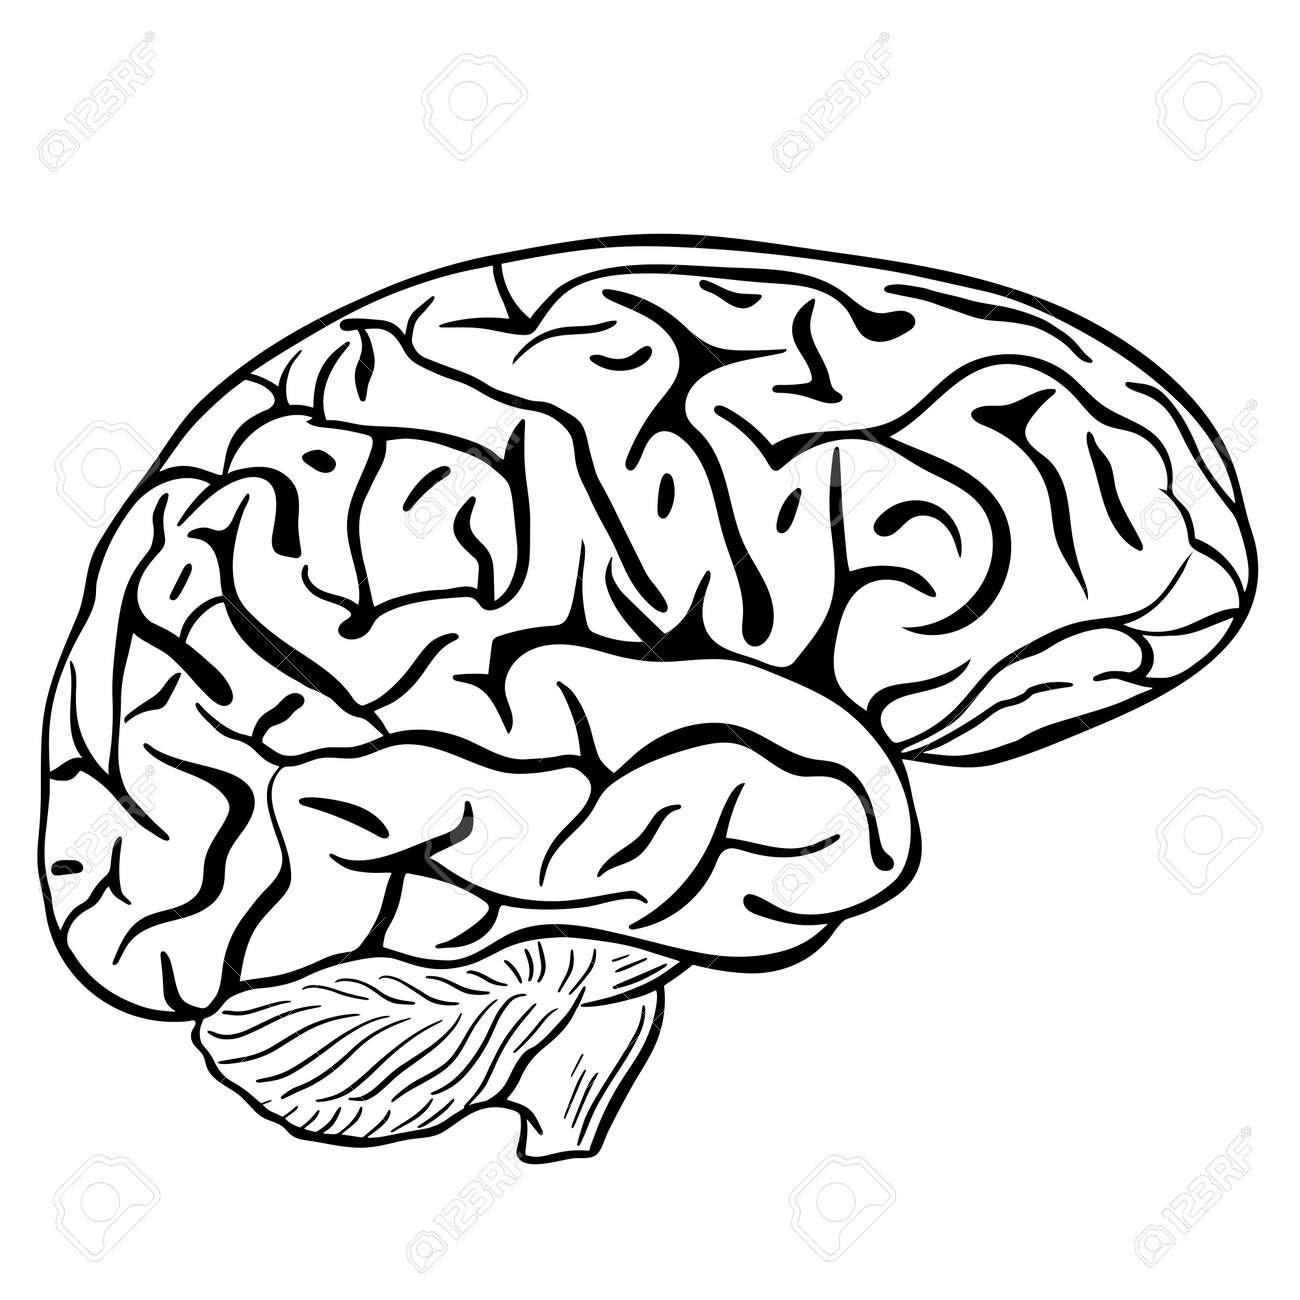 Human brain, sketch. Vector, black contour of the human brain on a white background. The main organ of thinking. Brain silhouette. - 167782148